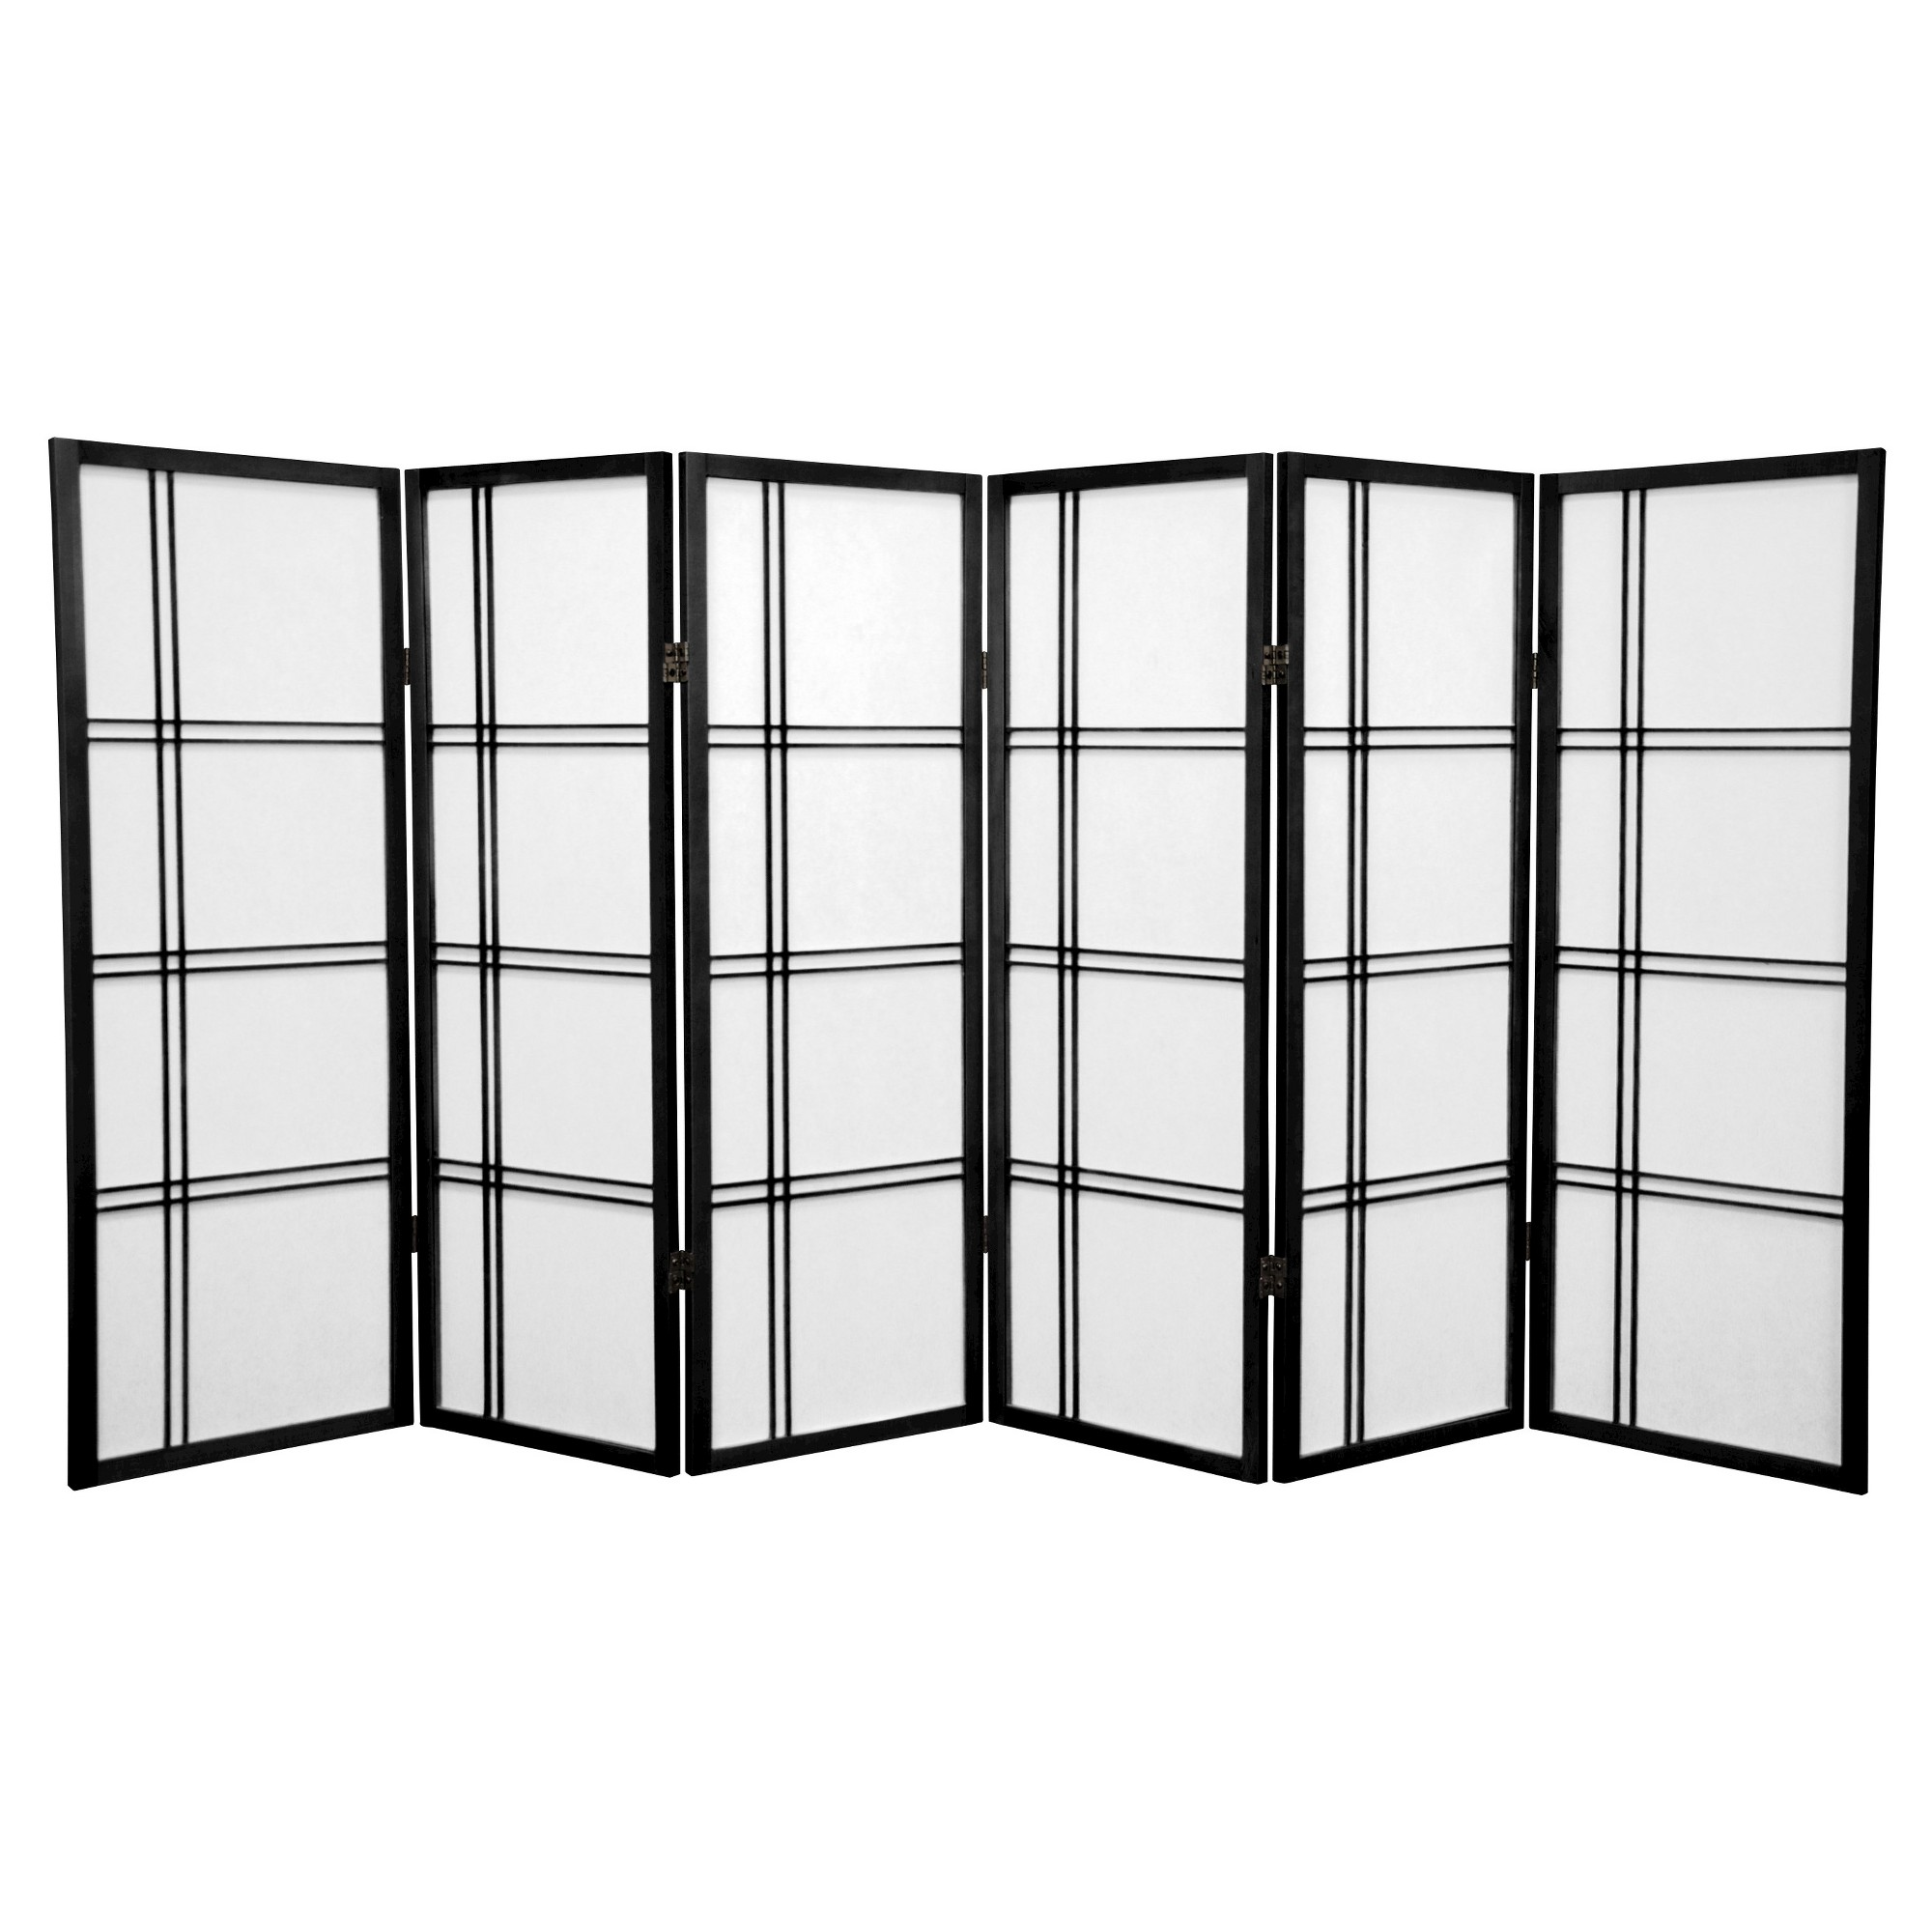 4 Foot Tall Room Dividers Tyres2c